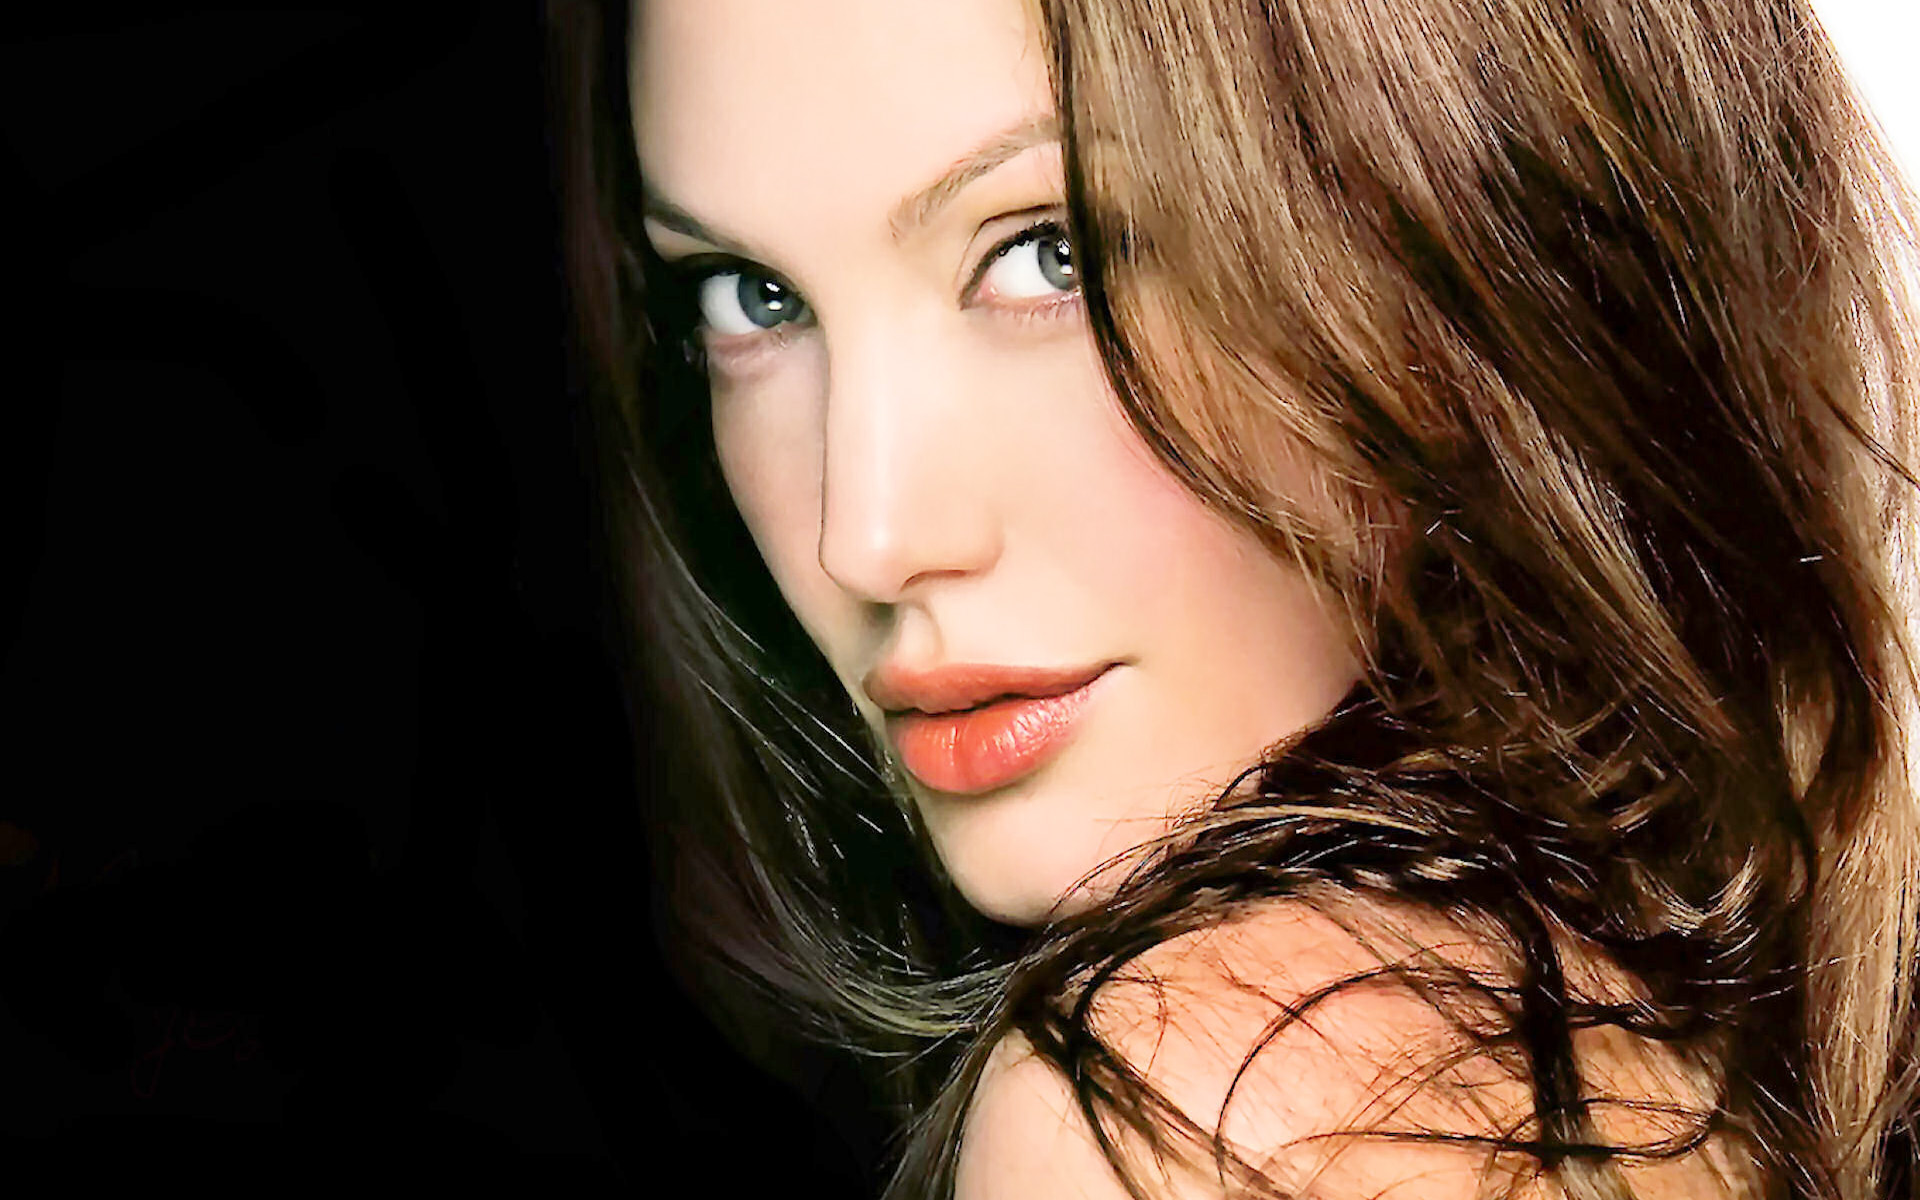 New Latest Wallpapers Of Angelina Jolie 2012 High Quality